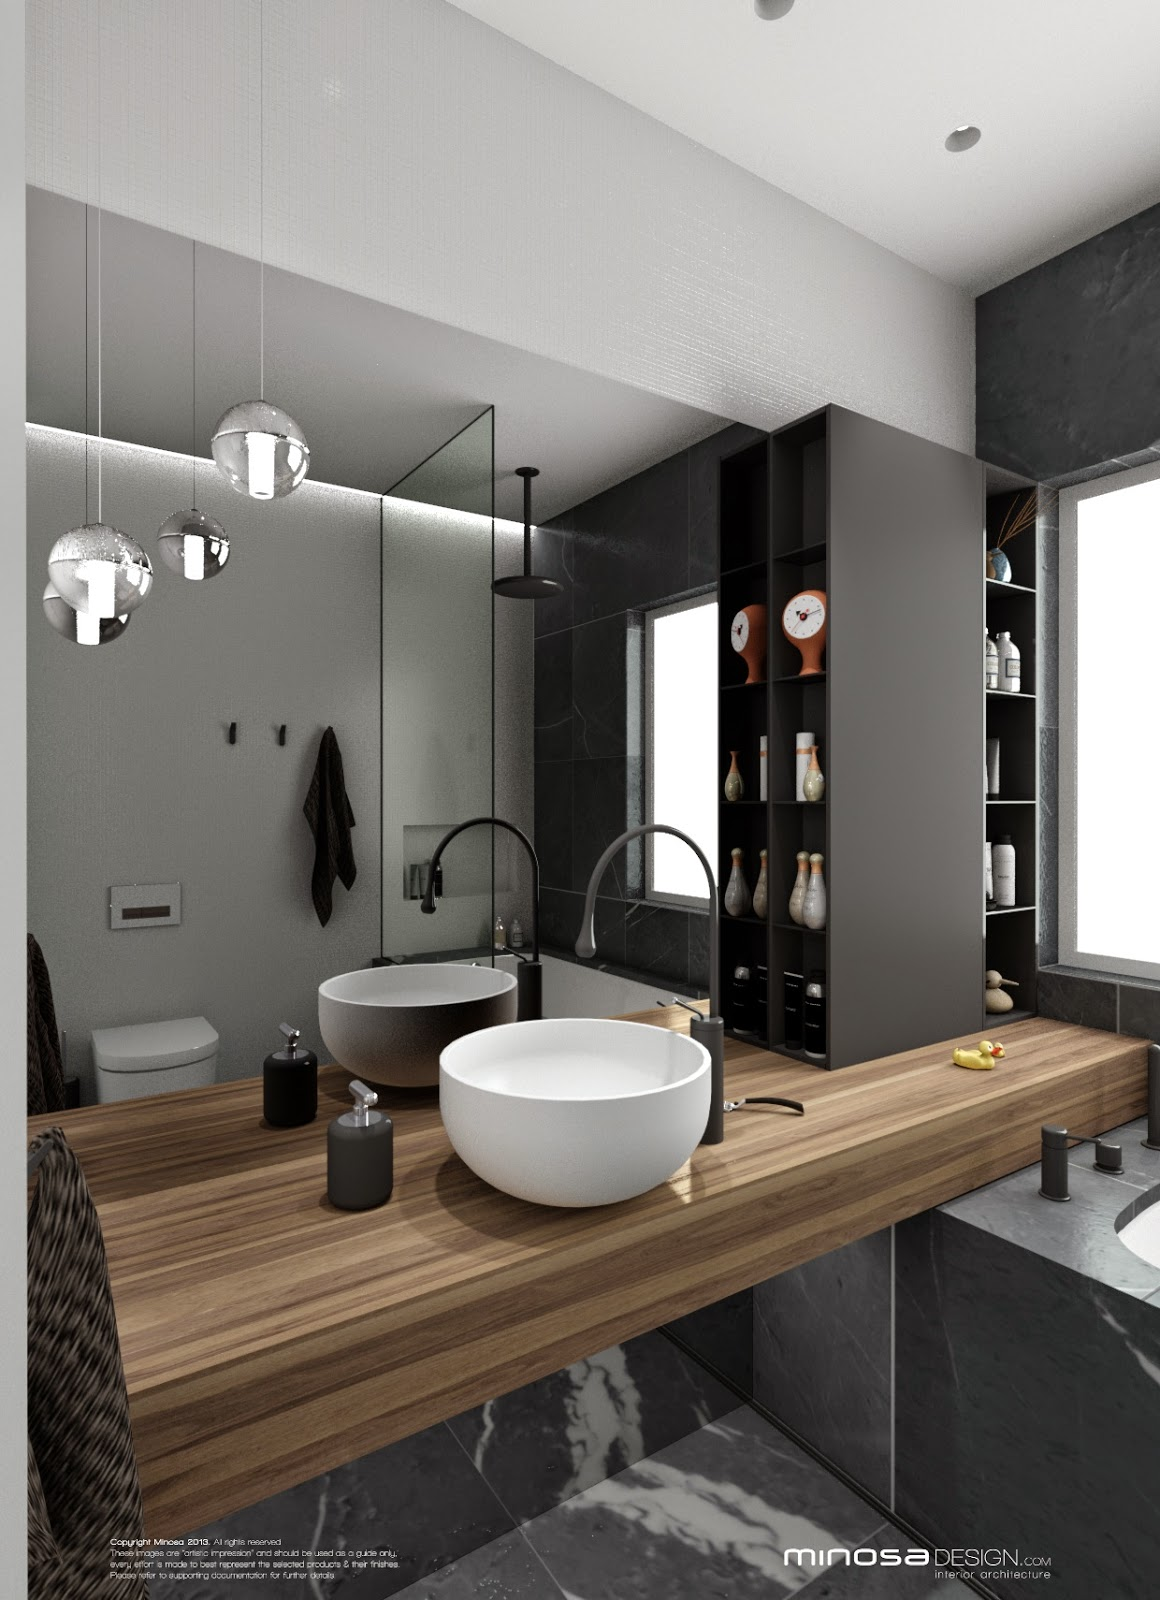 Minosa bathroom design small space feels large Small bathroom designs